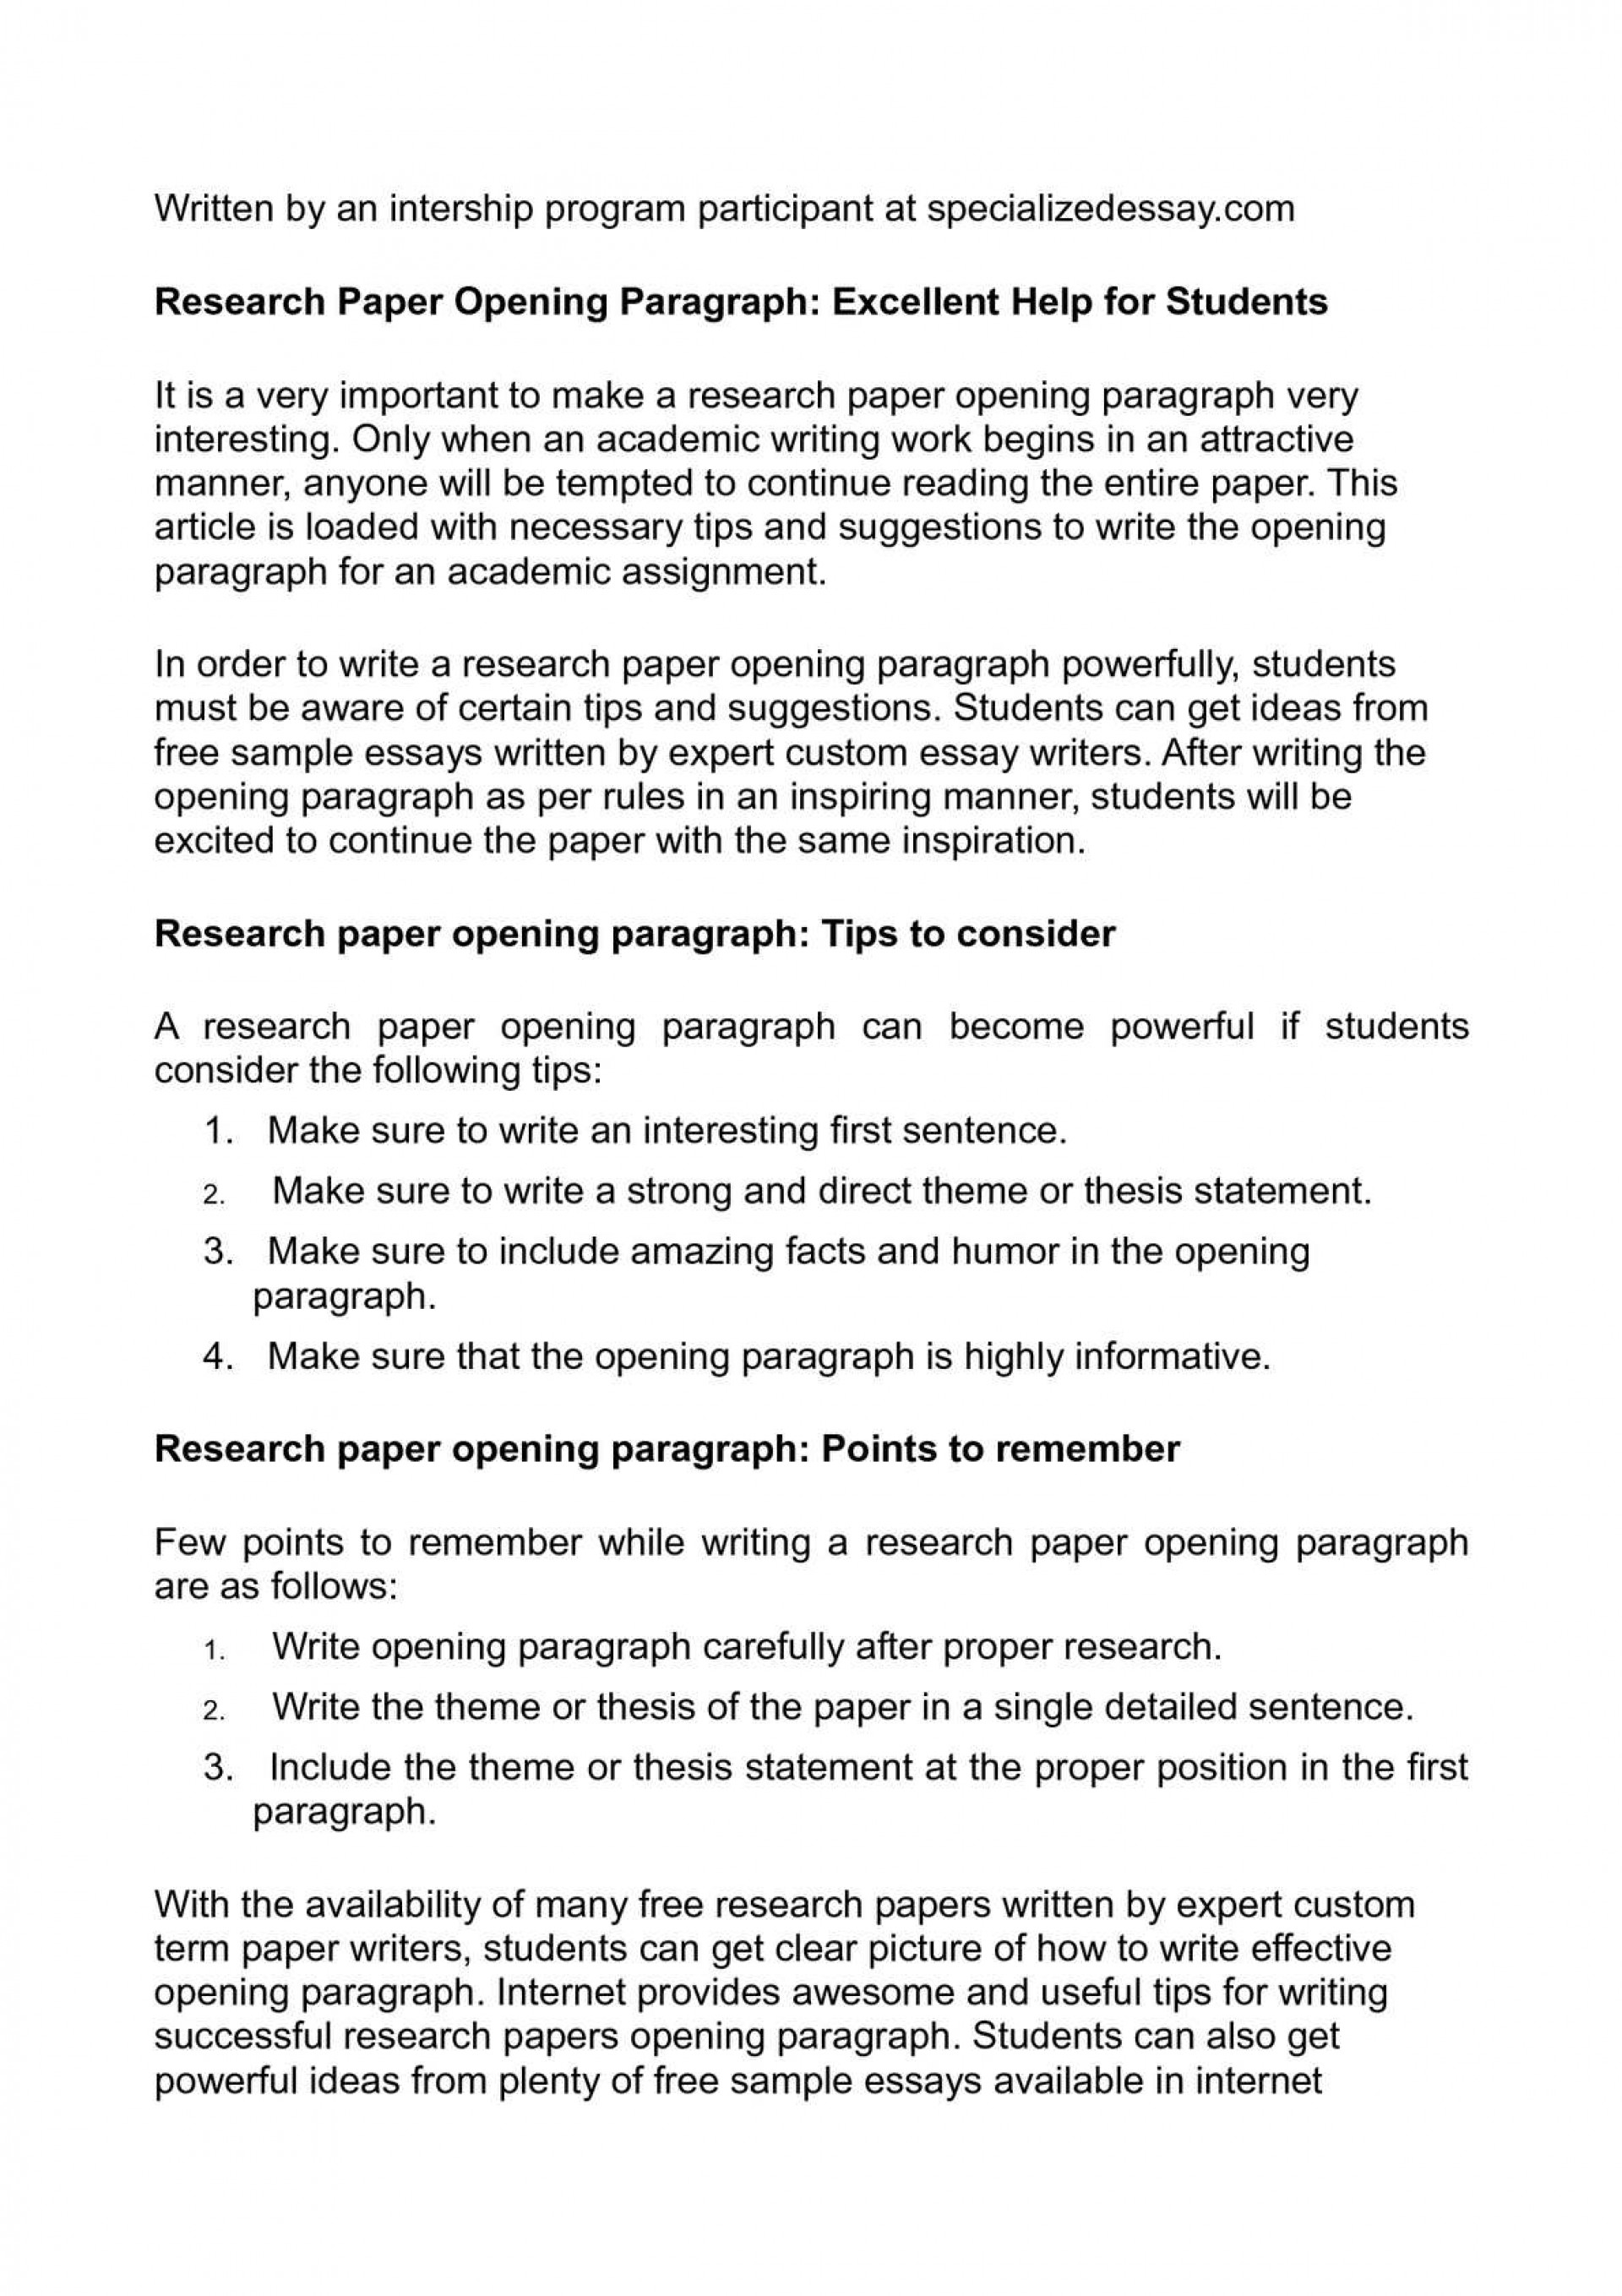 005 Research Paper How To Start Paragraph Stirring A New In Your Introduction On An Opening 1920